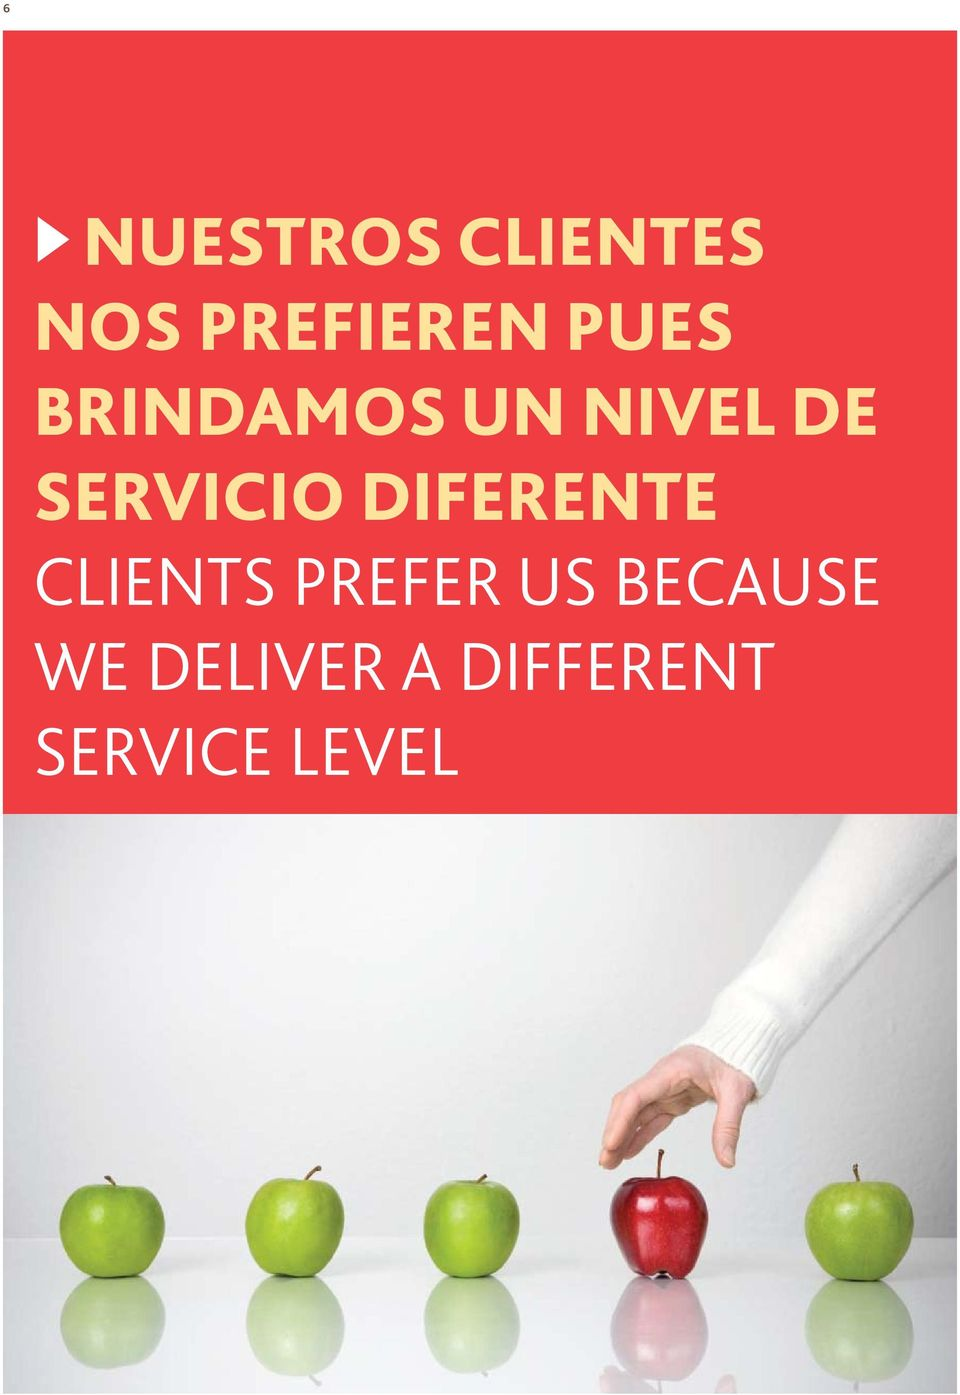 DIFERENTE CLIENTS PREFER US BECAUSE